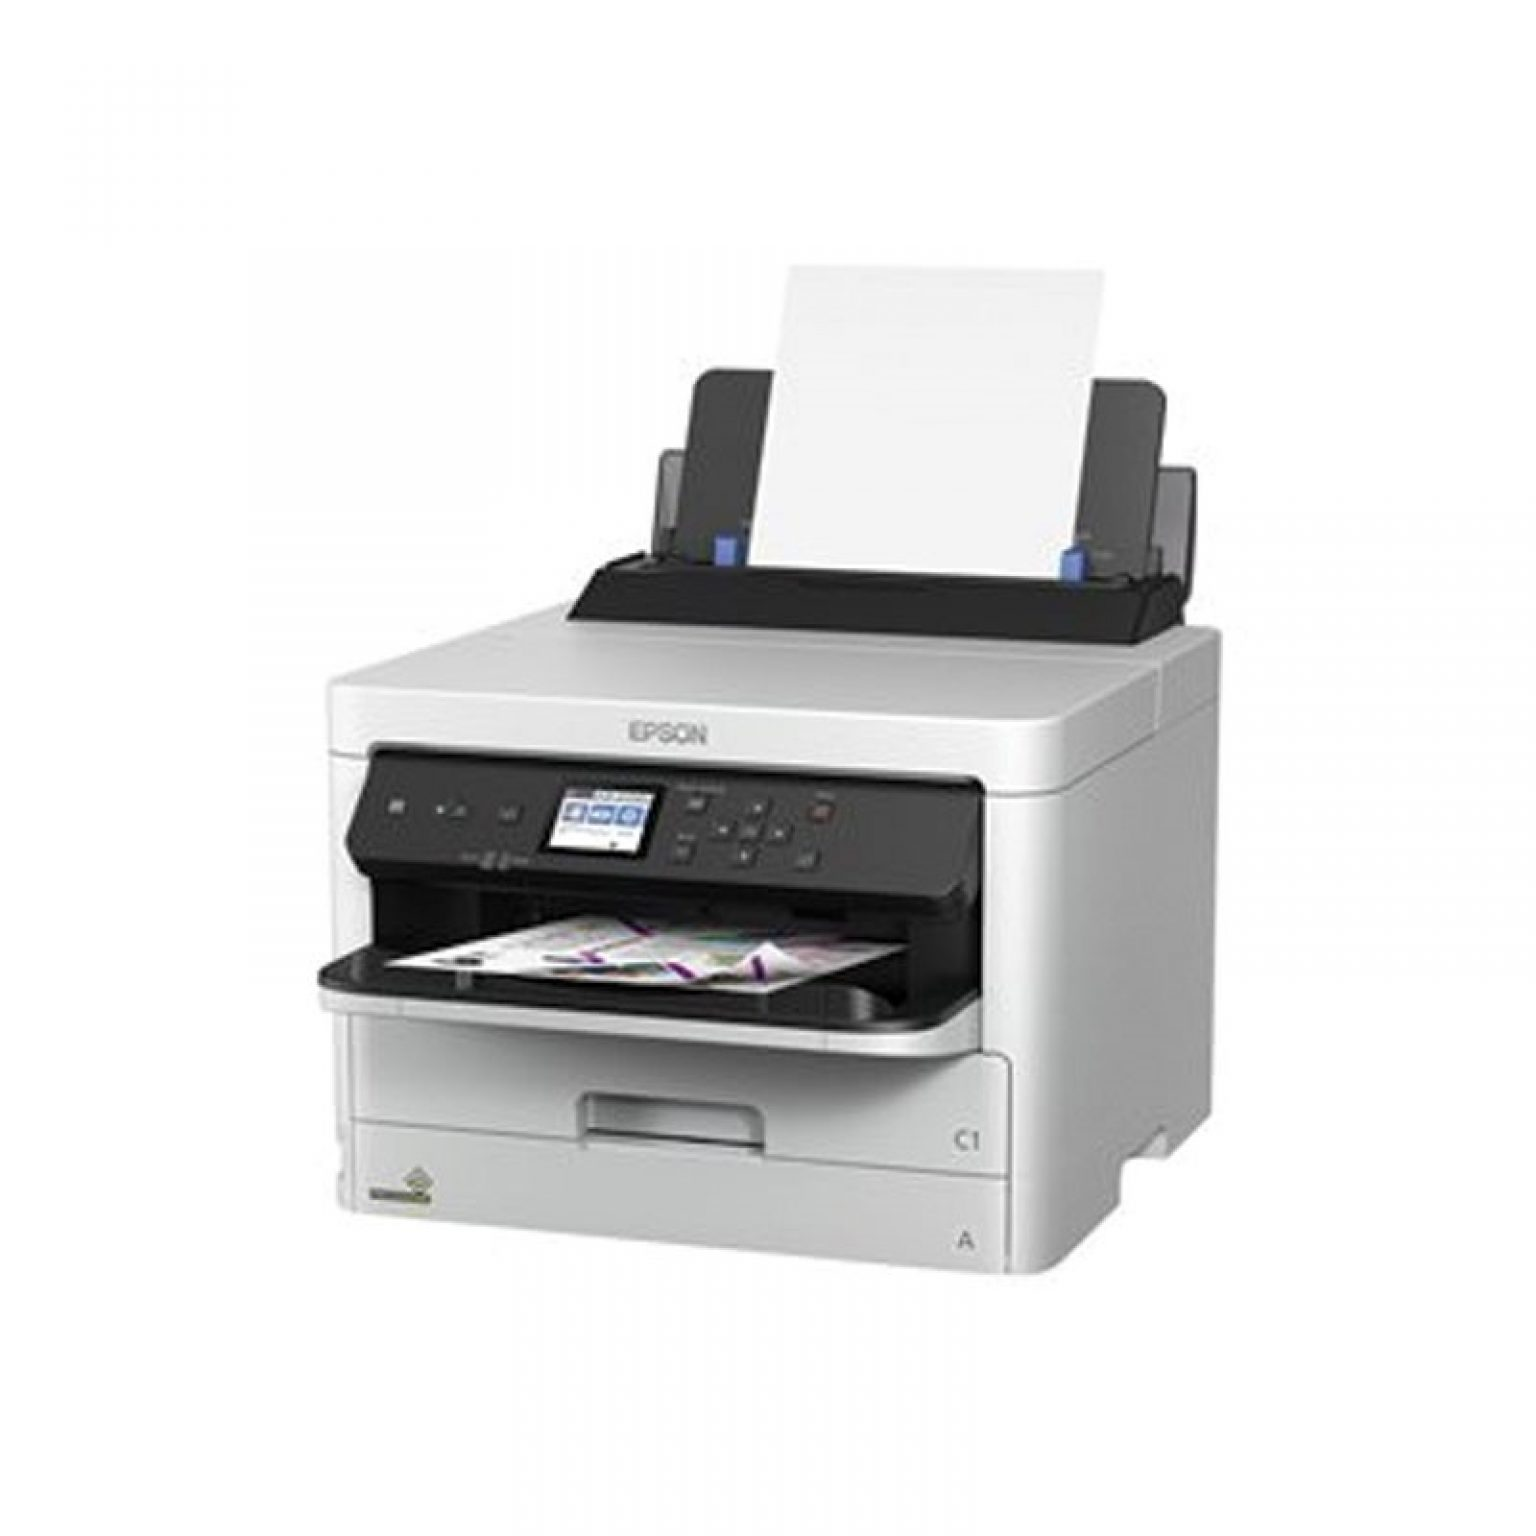 EPSON - WF C5290 Inkjet Printer